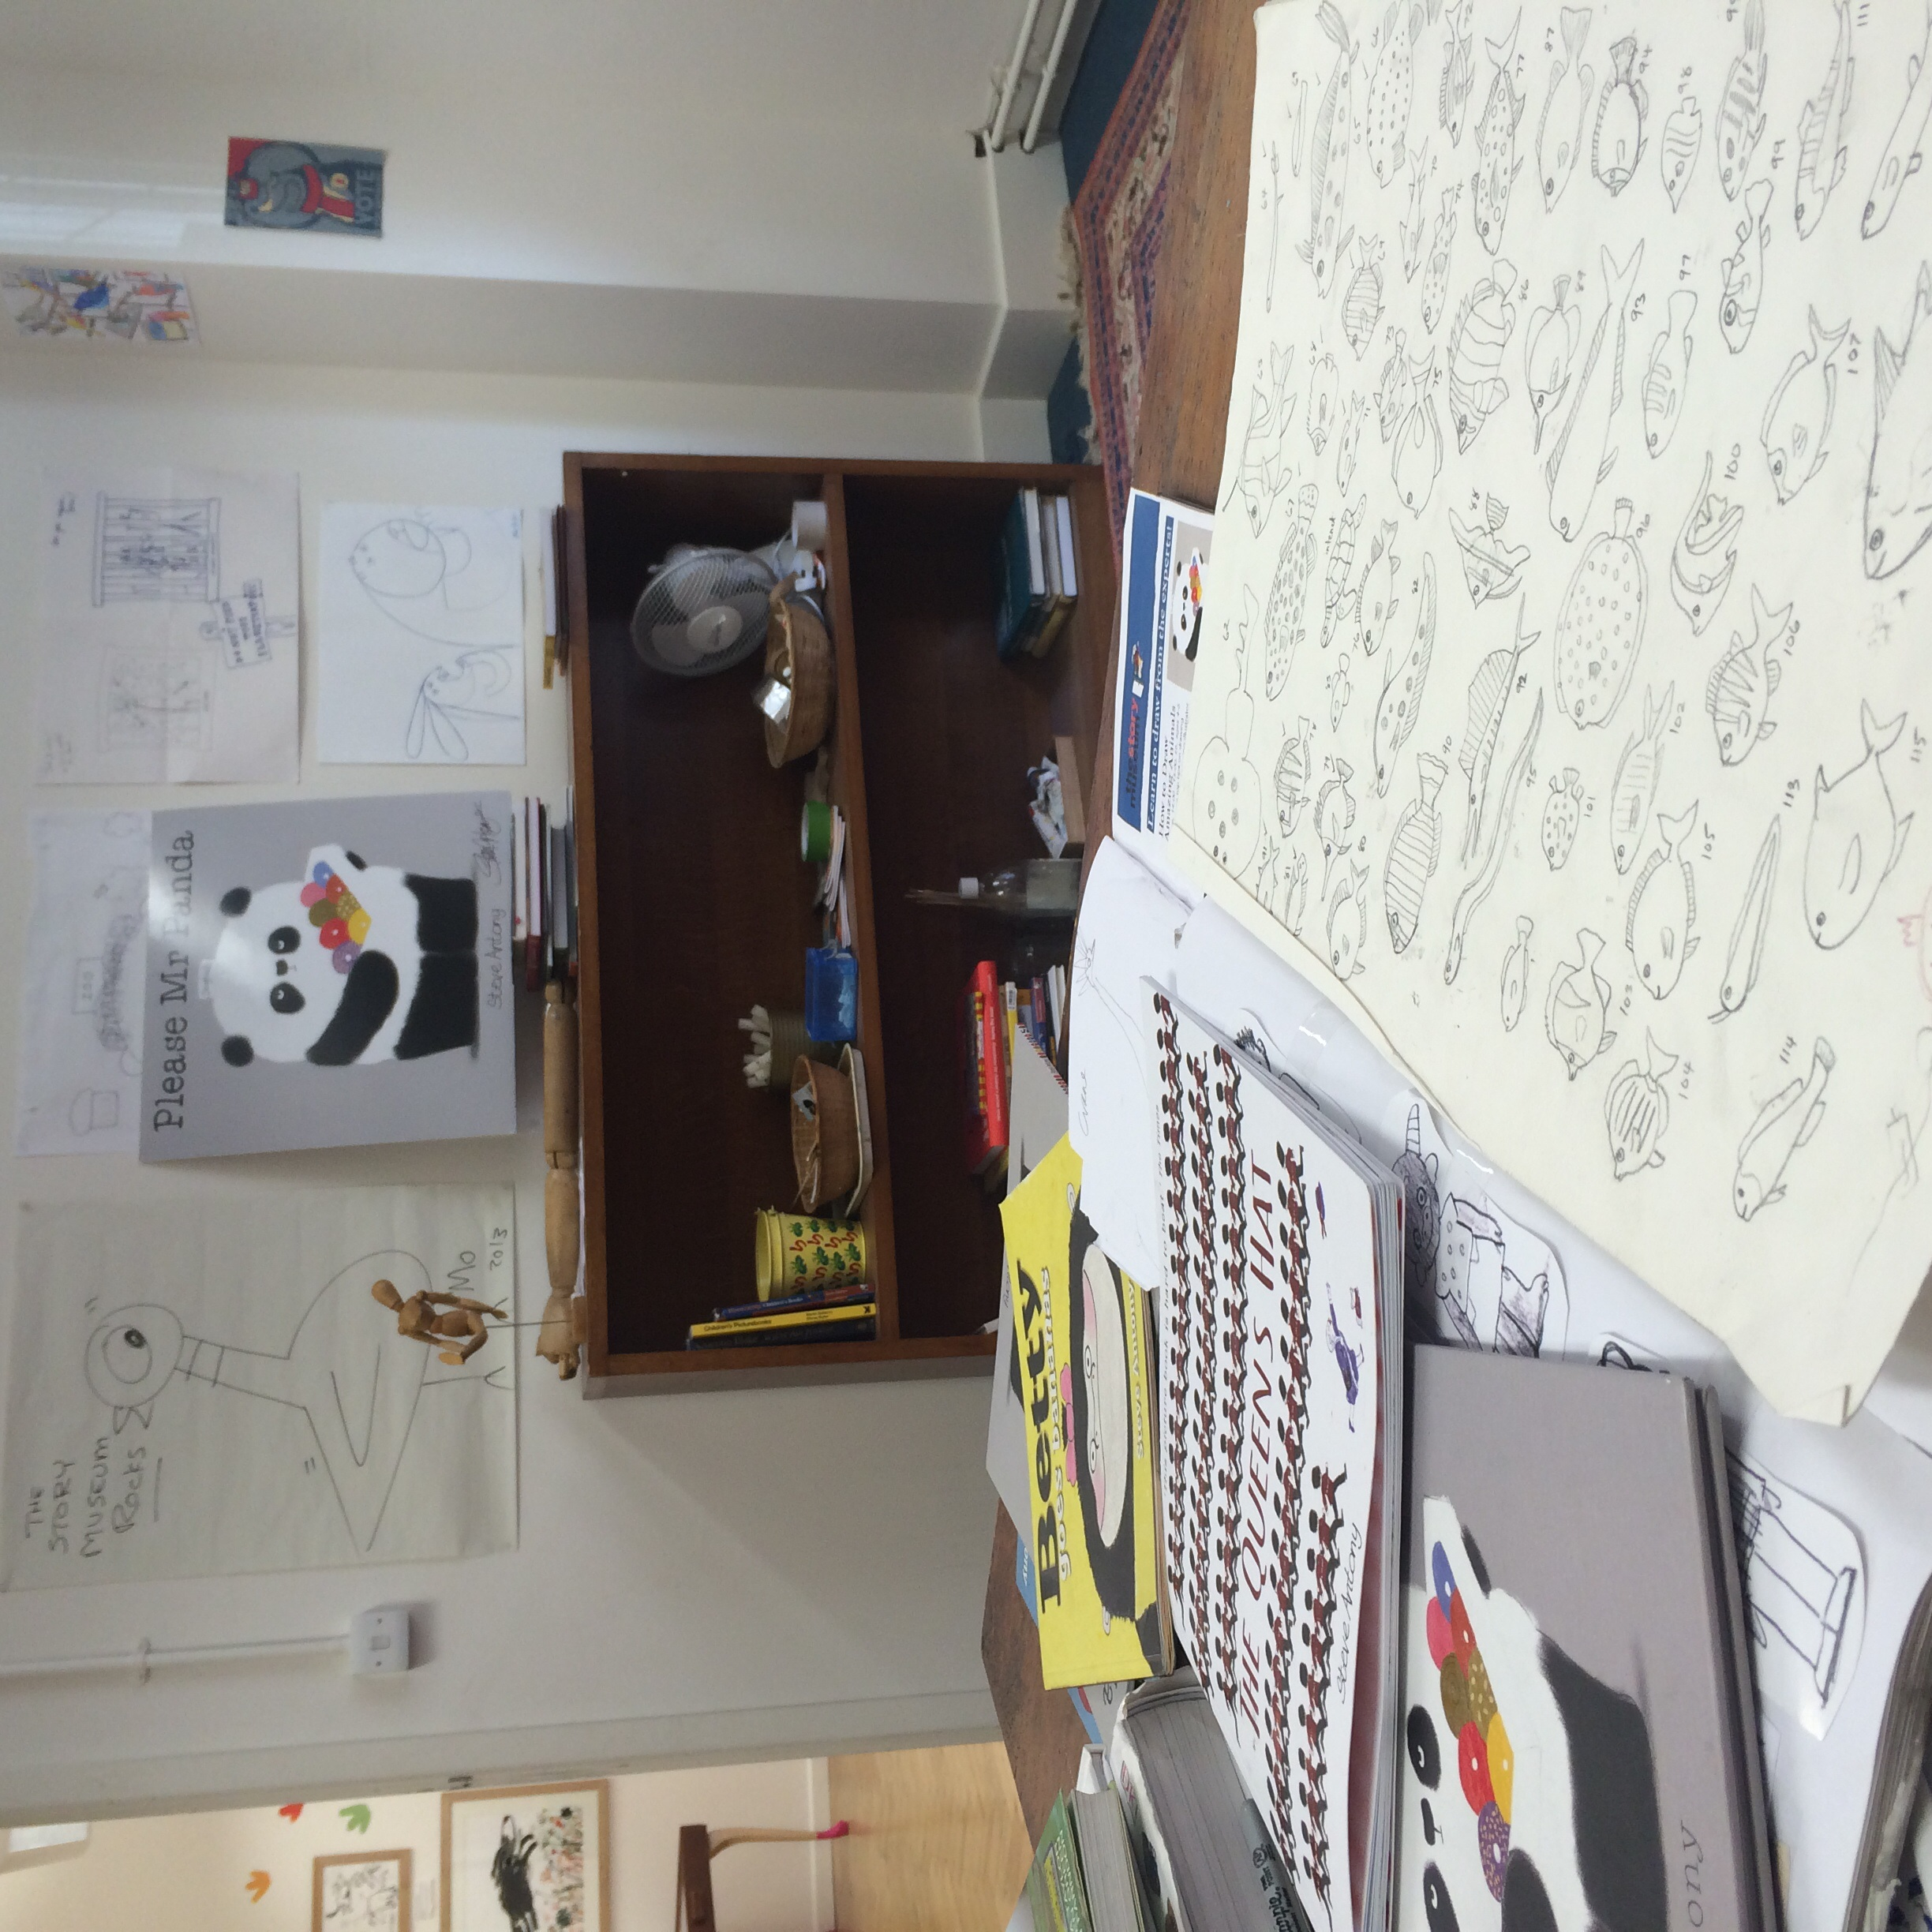 After my exploration, it was time to settle into my studio for the day. Here, my sketchbook is opened on a page of fish drawings. In the studio,I was surrounded by amazing art by the likes of Mo Willems...